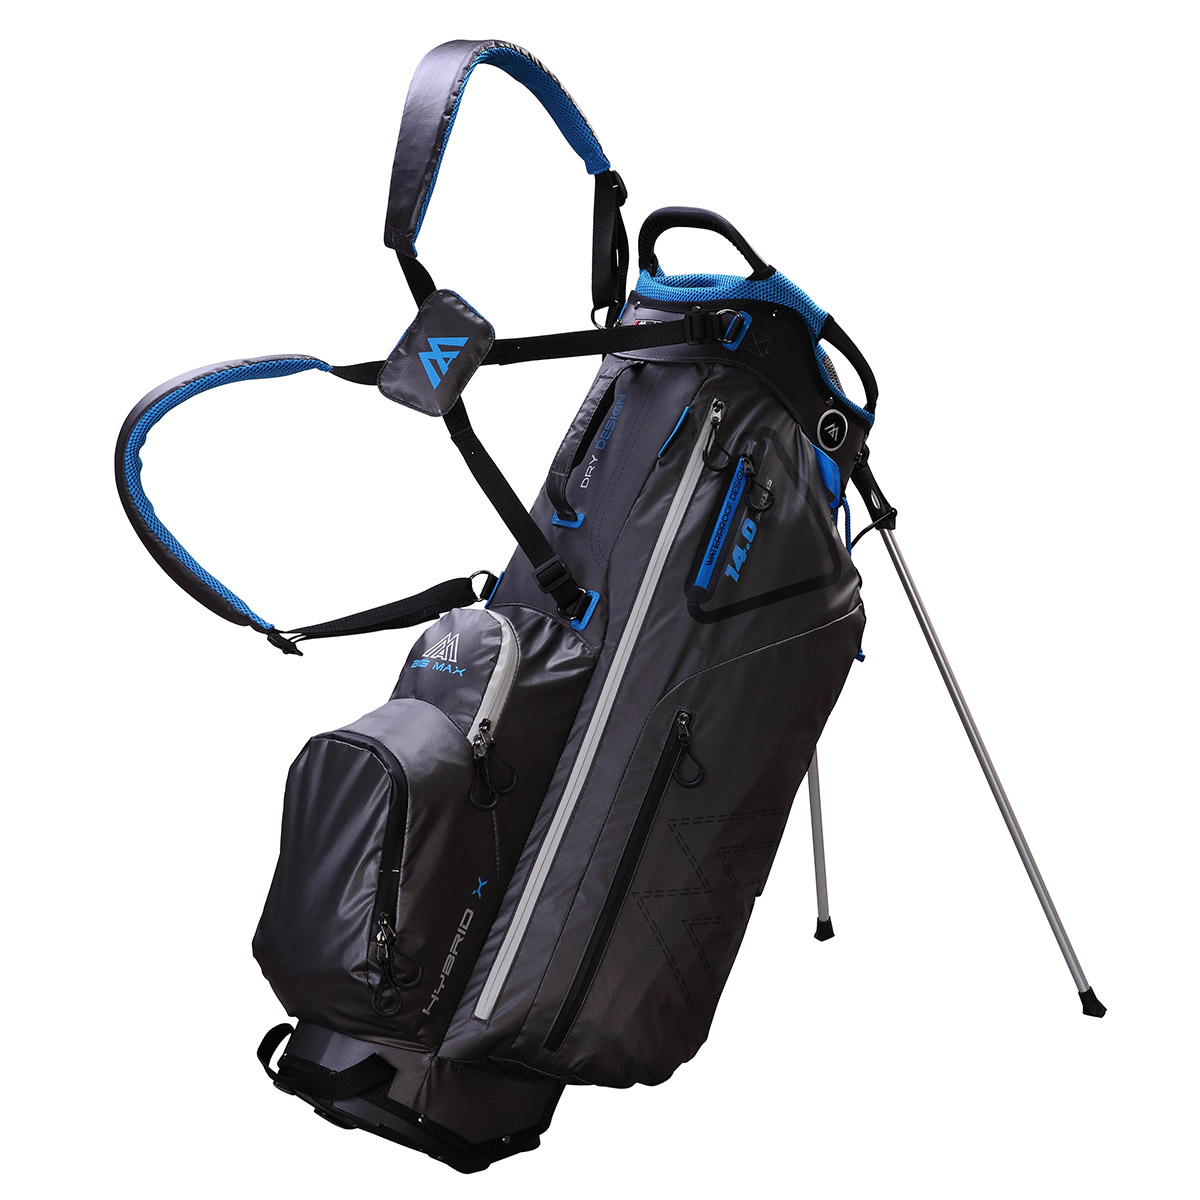 Big Max Aqua G Dri Lite Stand Bag Online Golf